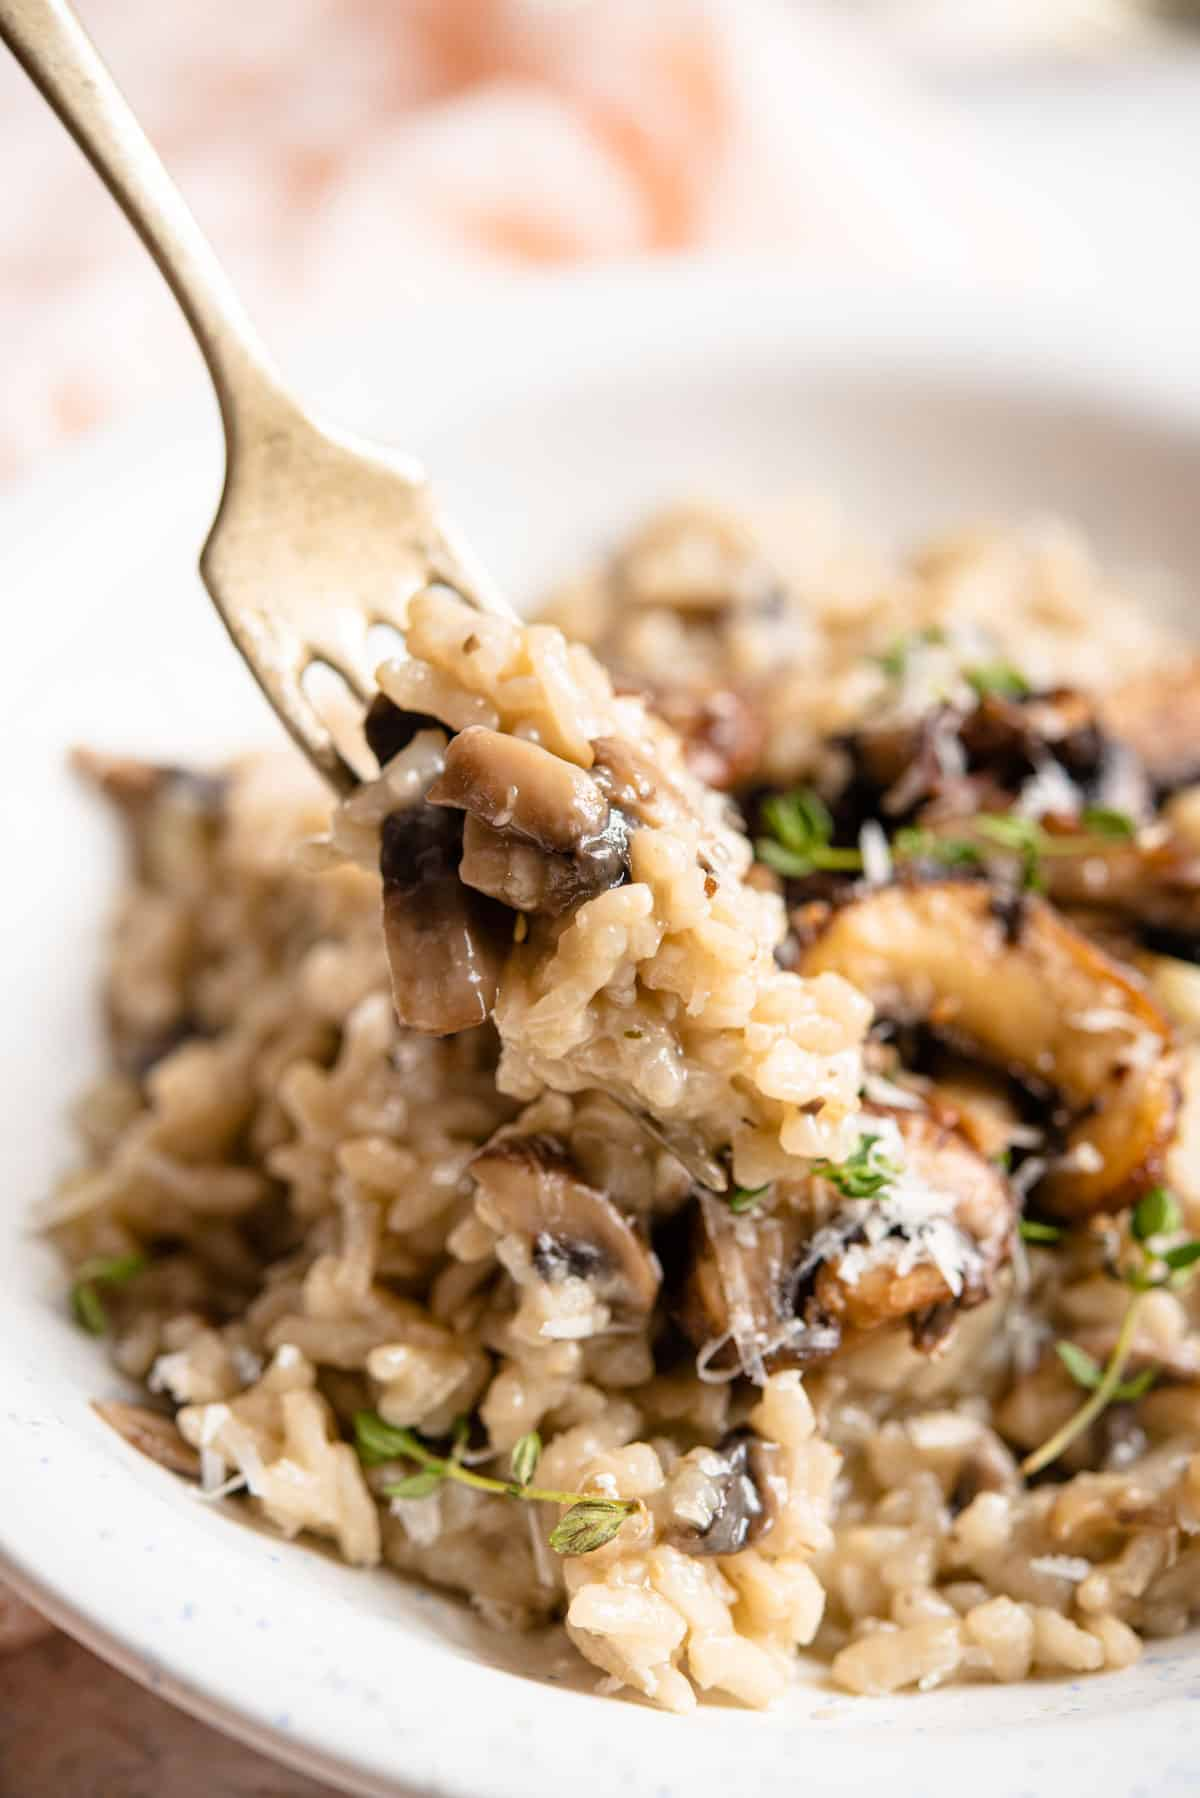 A close up of mushroom risotto on a fork